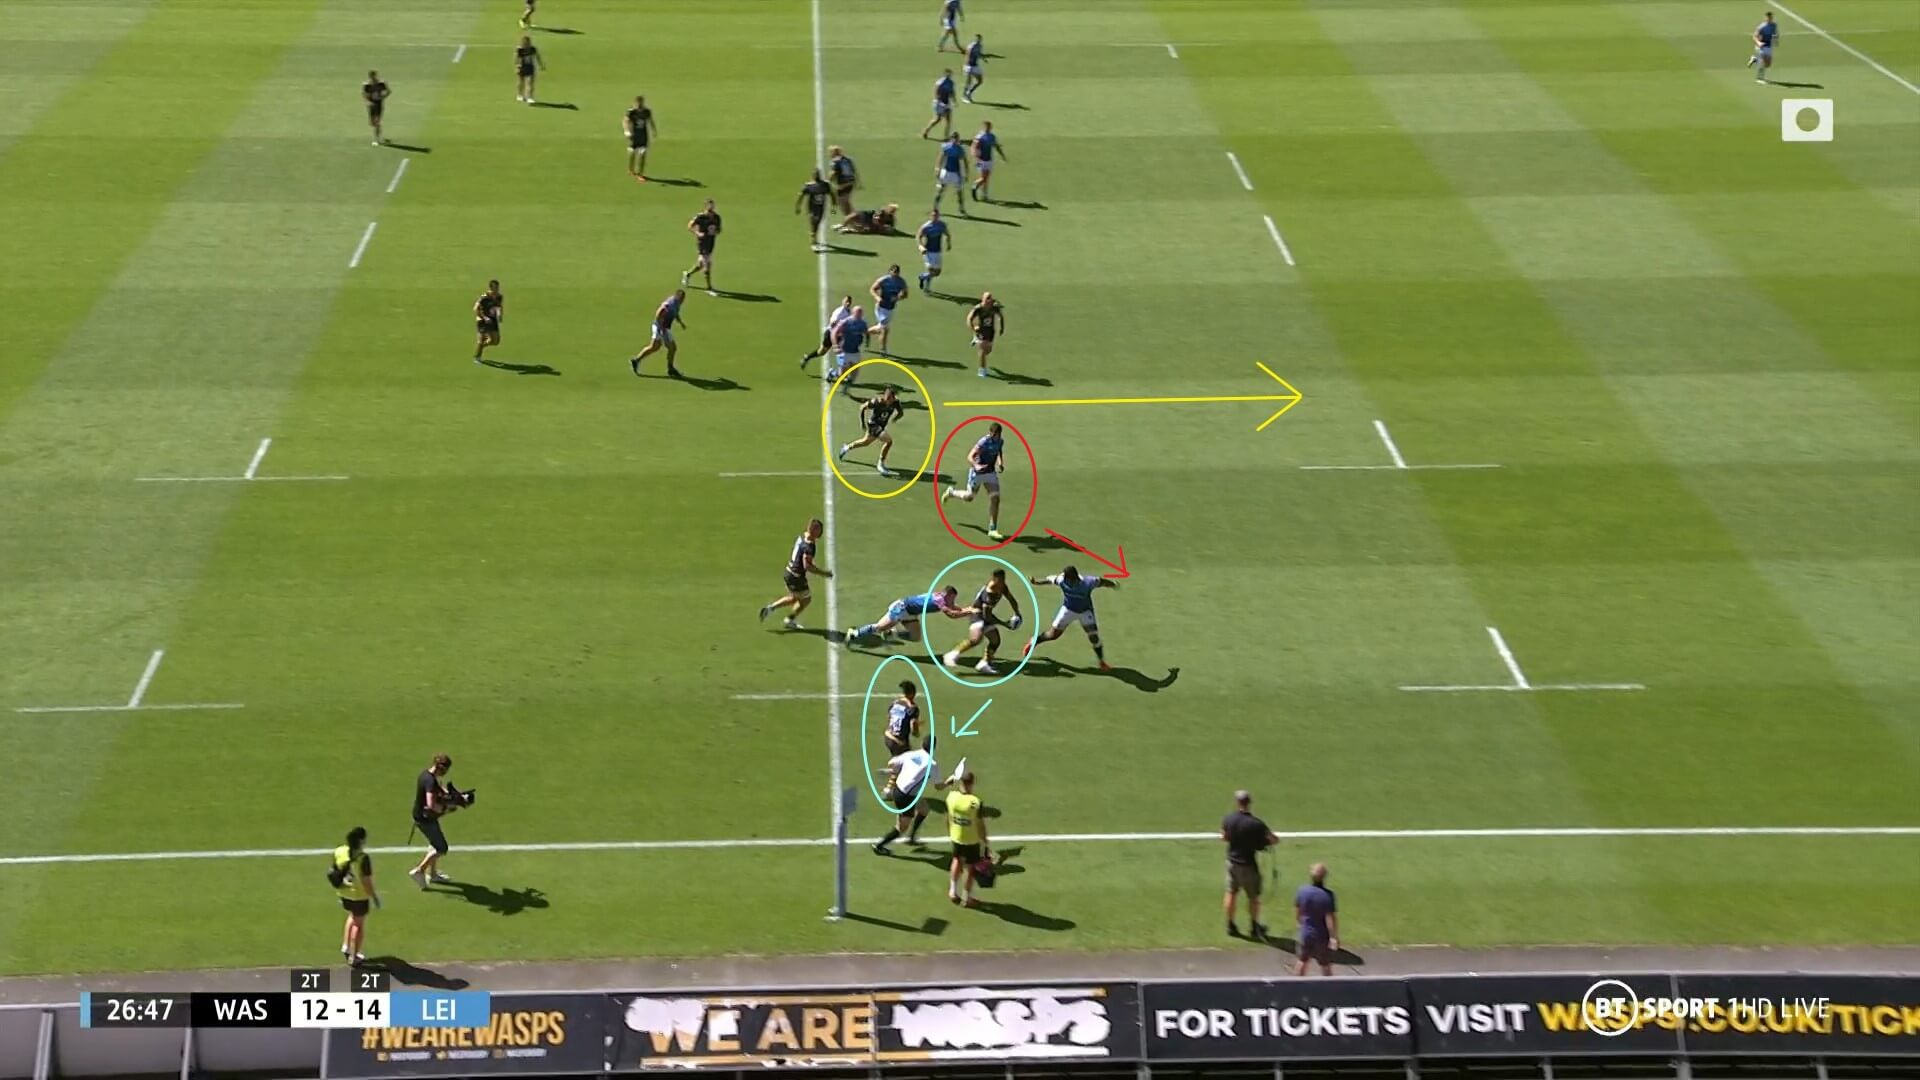 English Premiership 2020/2021: Wasps v Leicester Tigers - tactical analysis tactics